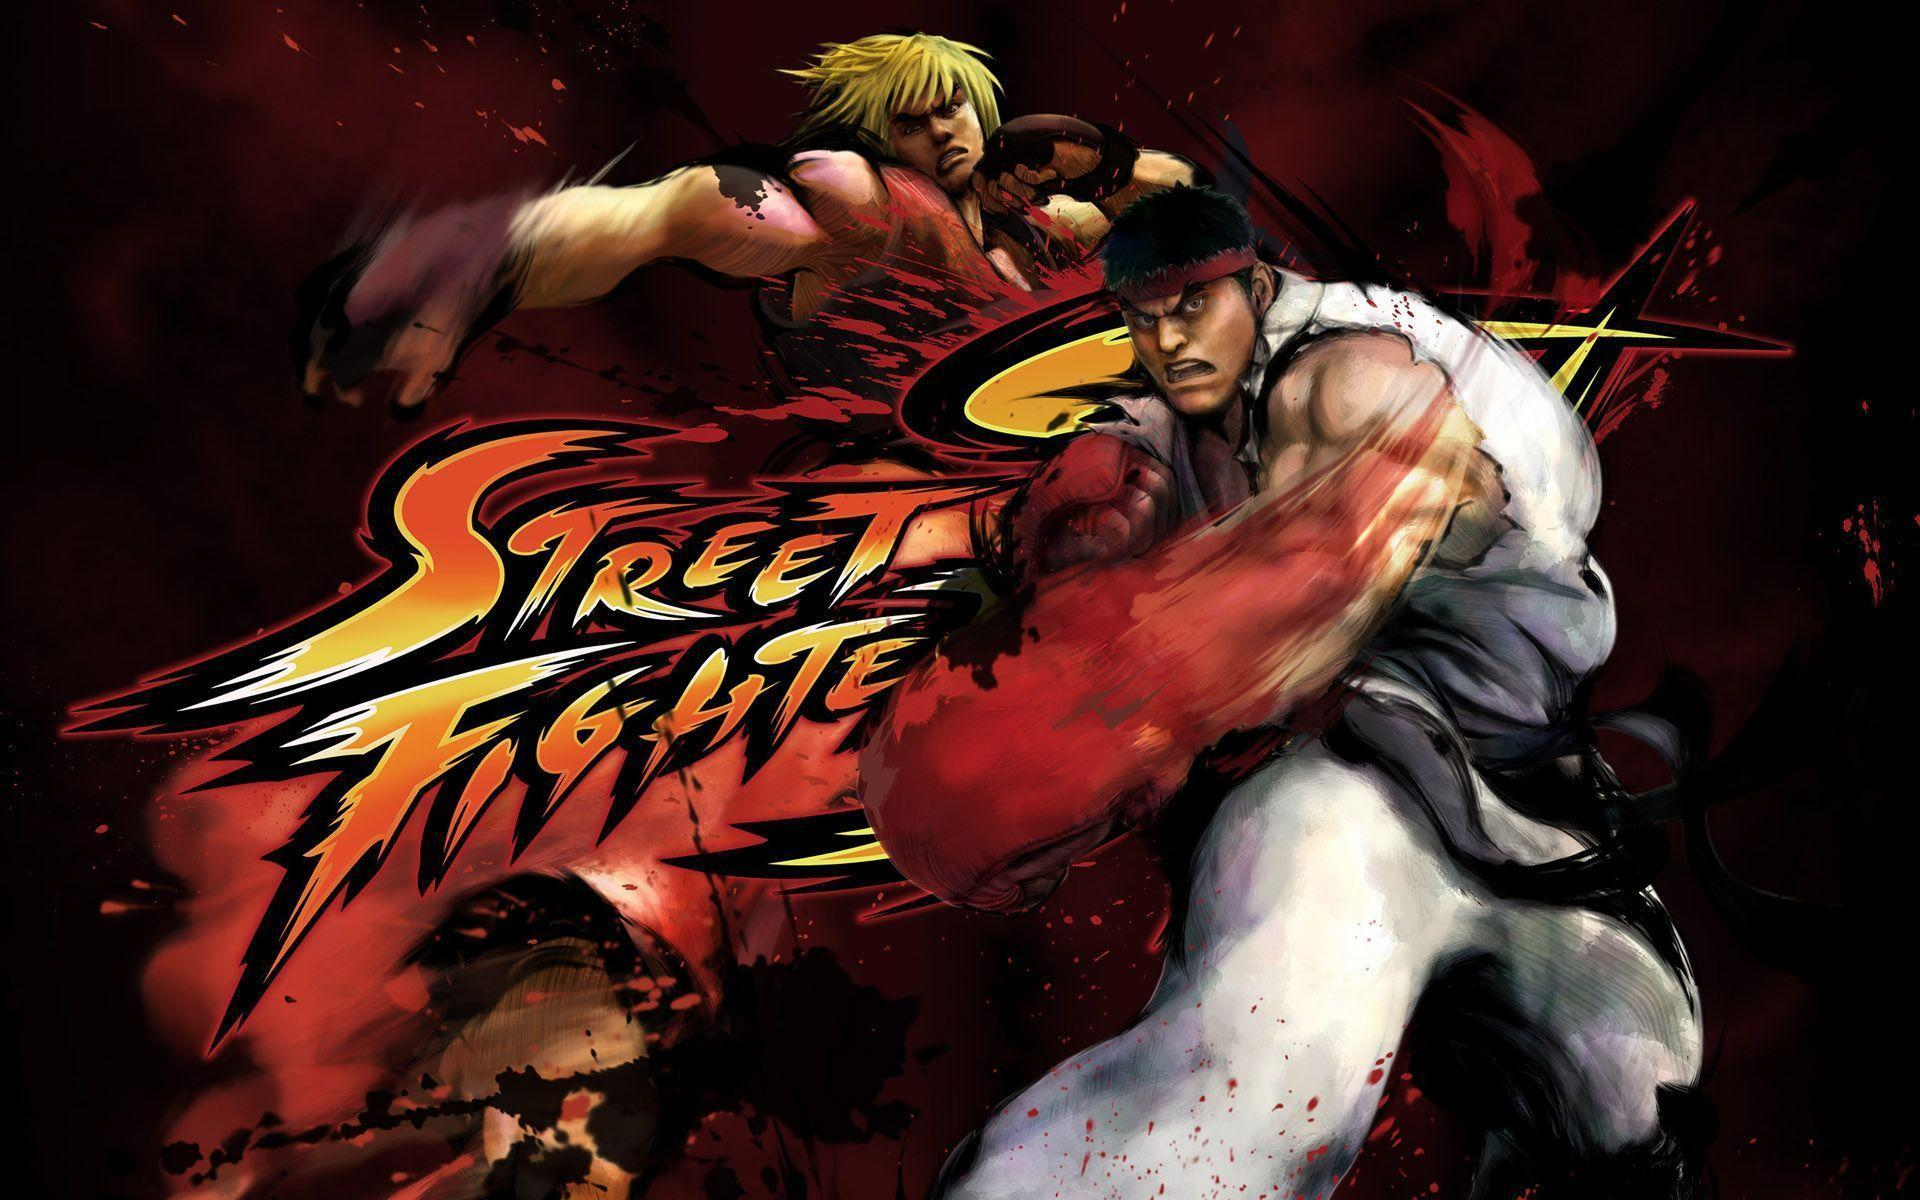 Street Fighter Wallpapers - Wallpaper Cave